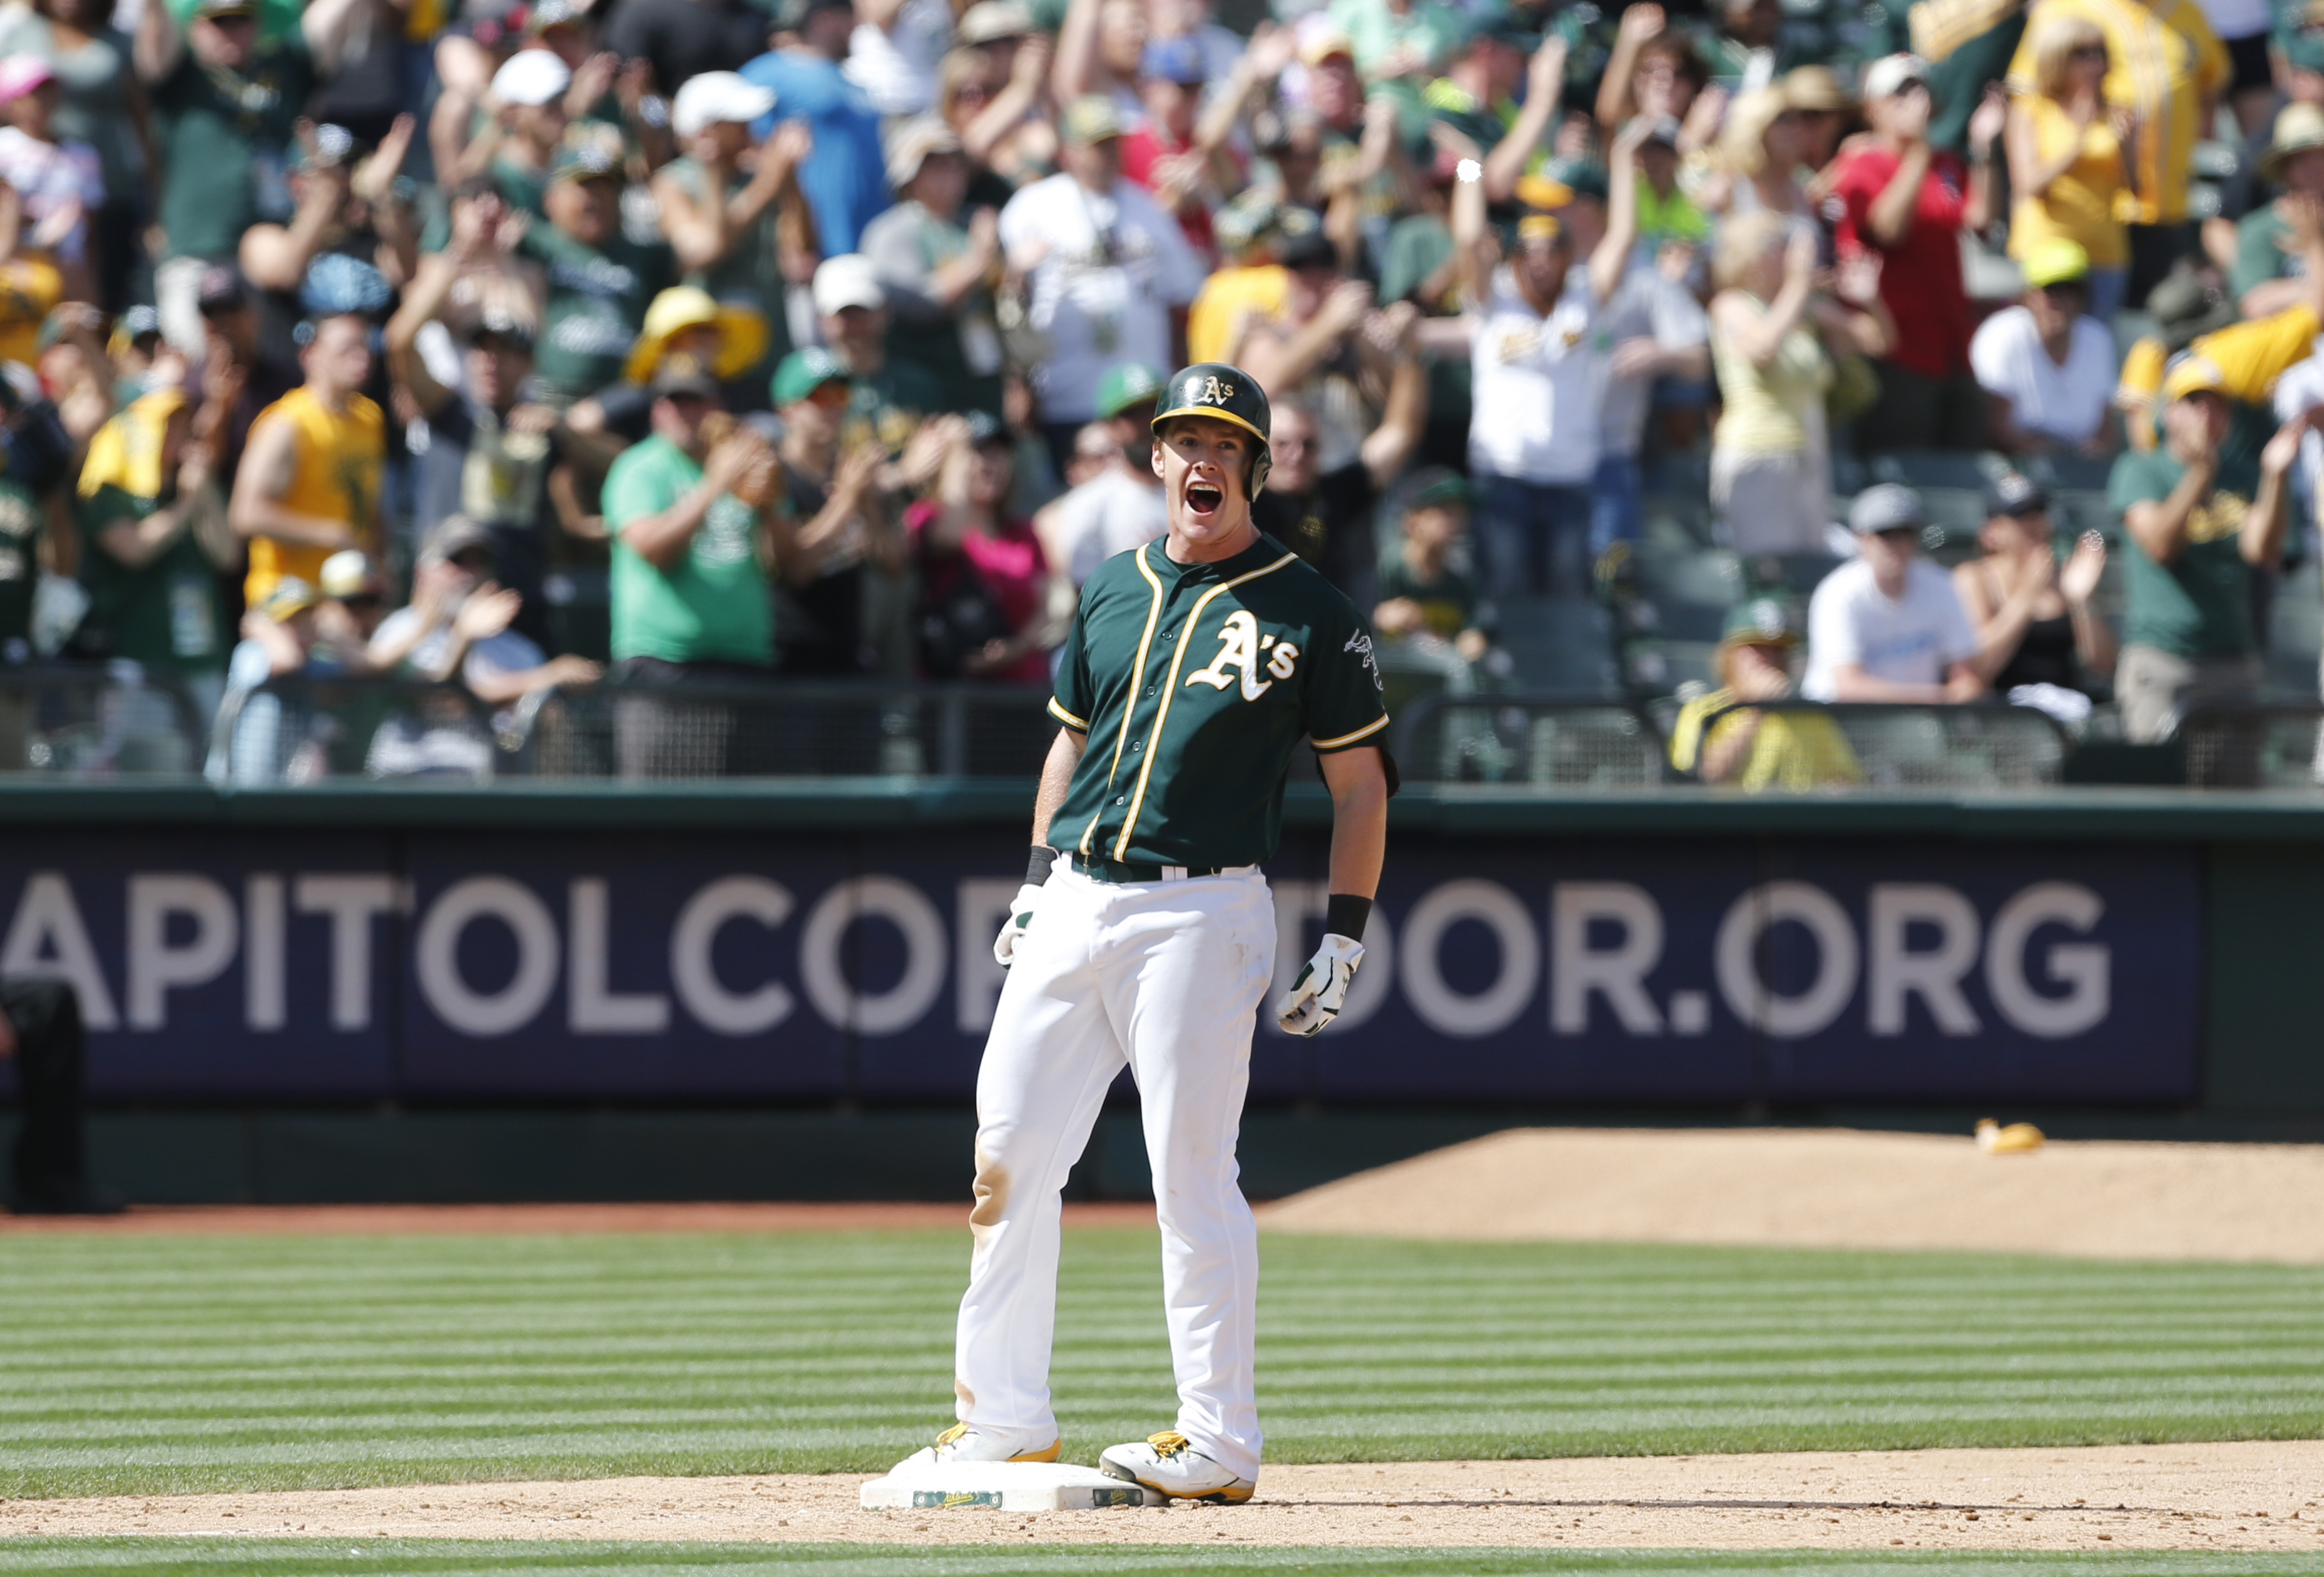 Oakland Athletics' Mark Cahn celebrates after hitting a 3 RBI triple during the seventh inning of a baseball game against the Tampa Bay Rays, Sunday, Aug. 23, 2015, in Oakland, Calif. (AP Photo/Beck Diefenbach)